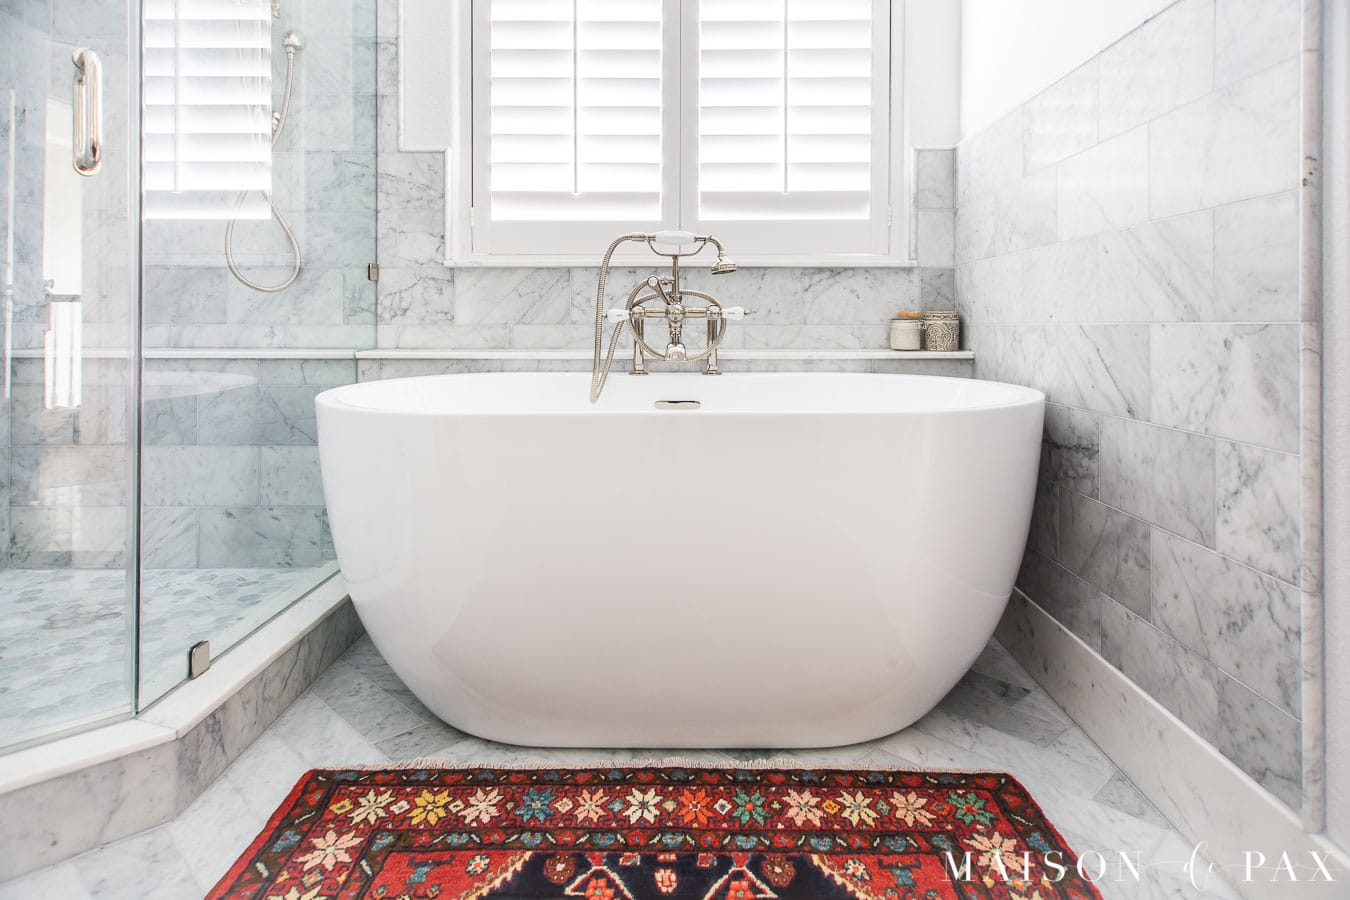 colorful vintage persian rug in front of freestanding tub | Maison de Pax